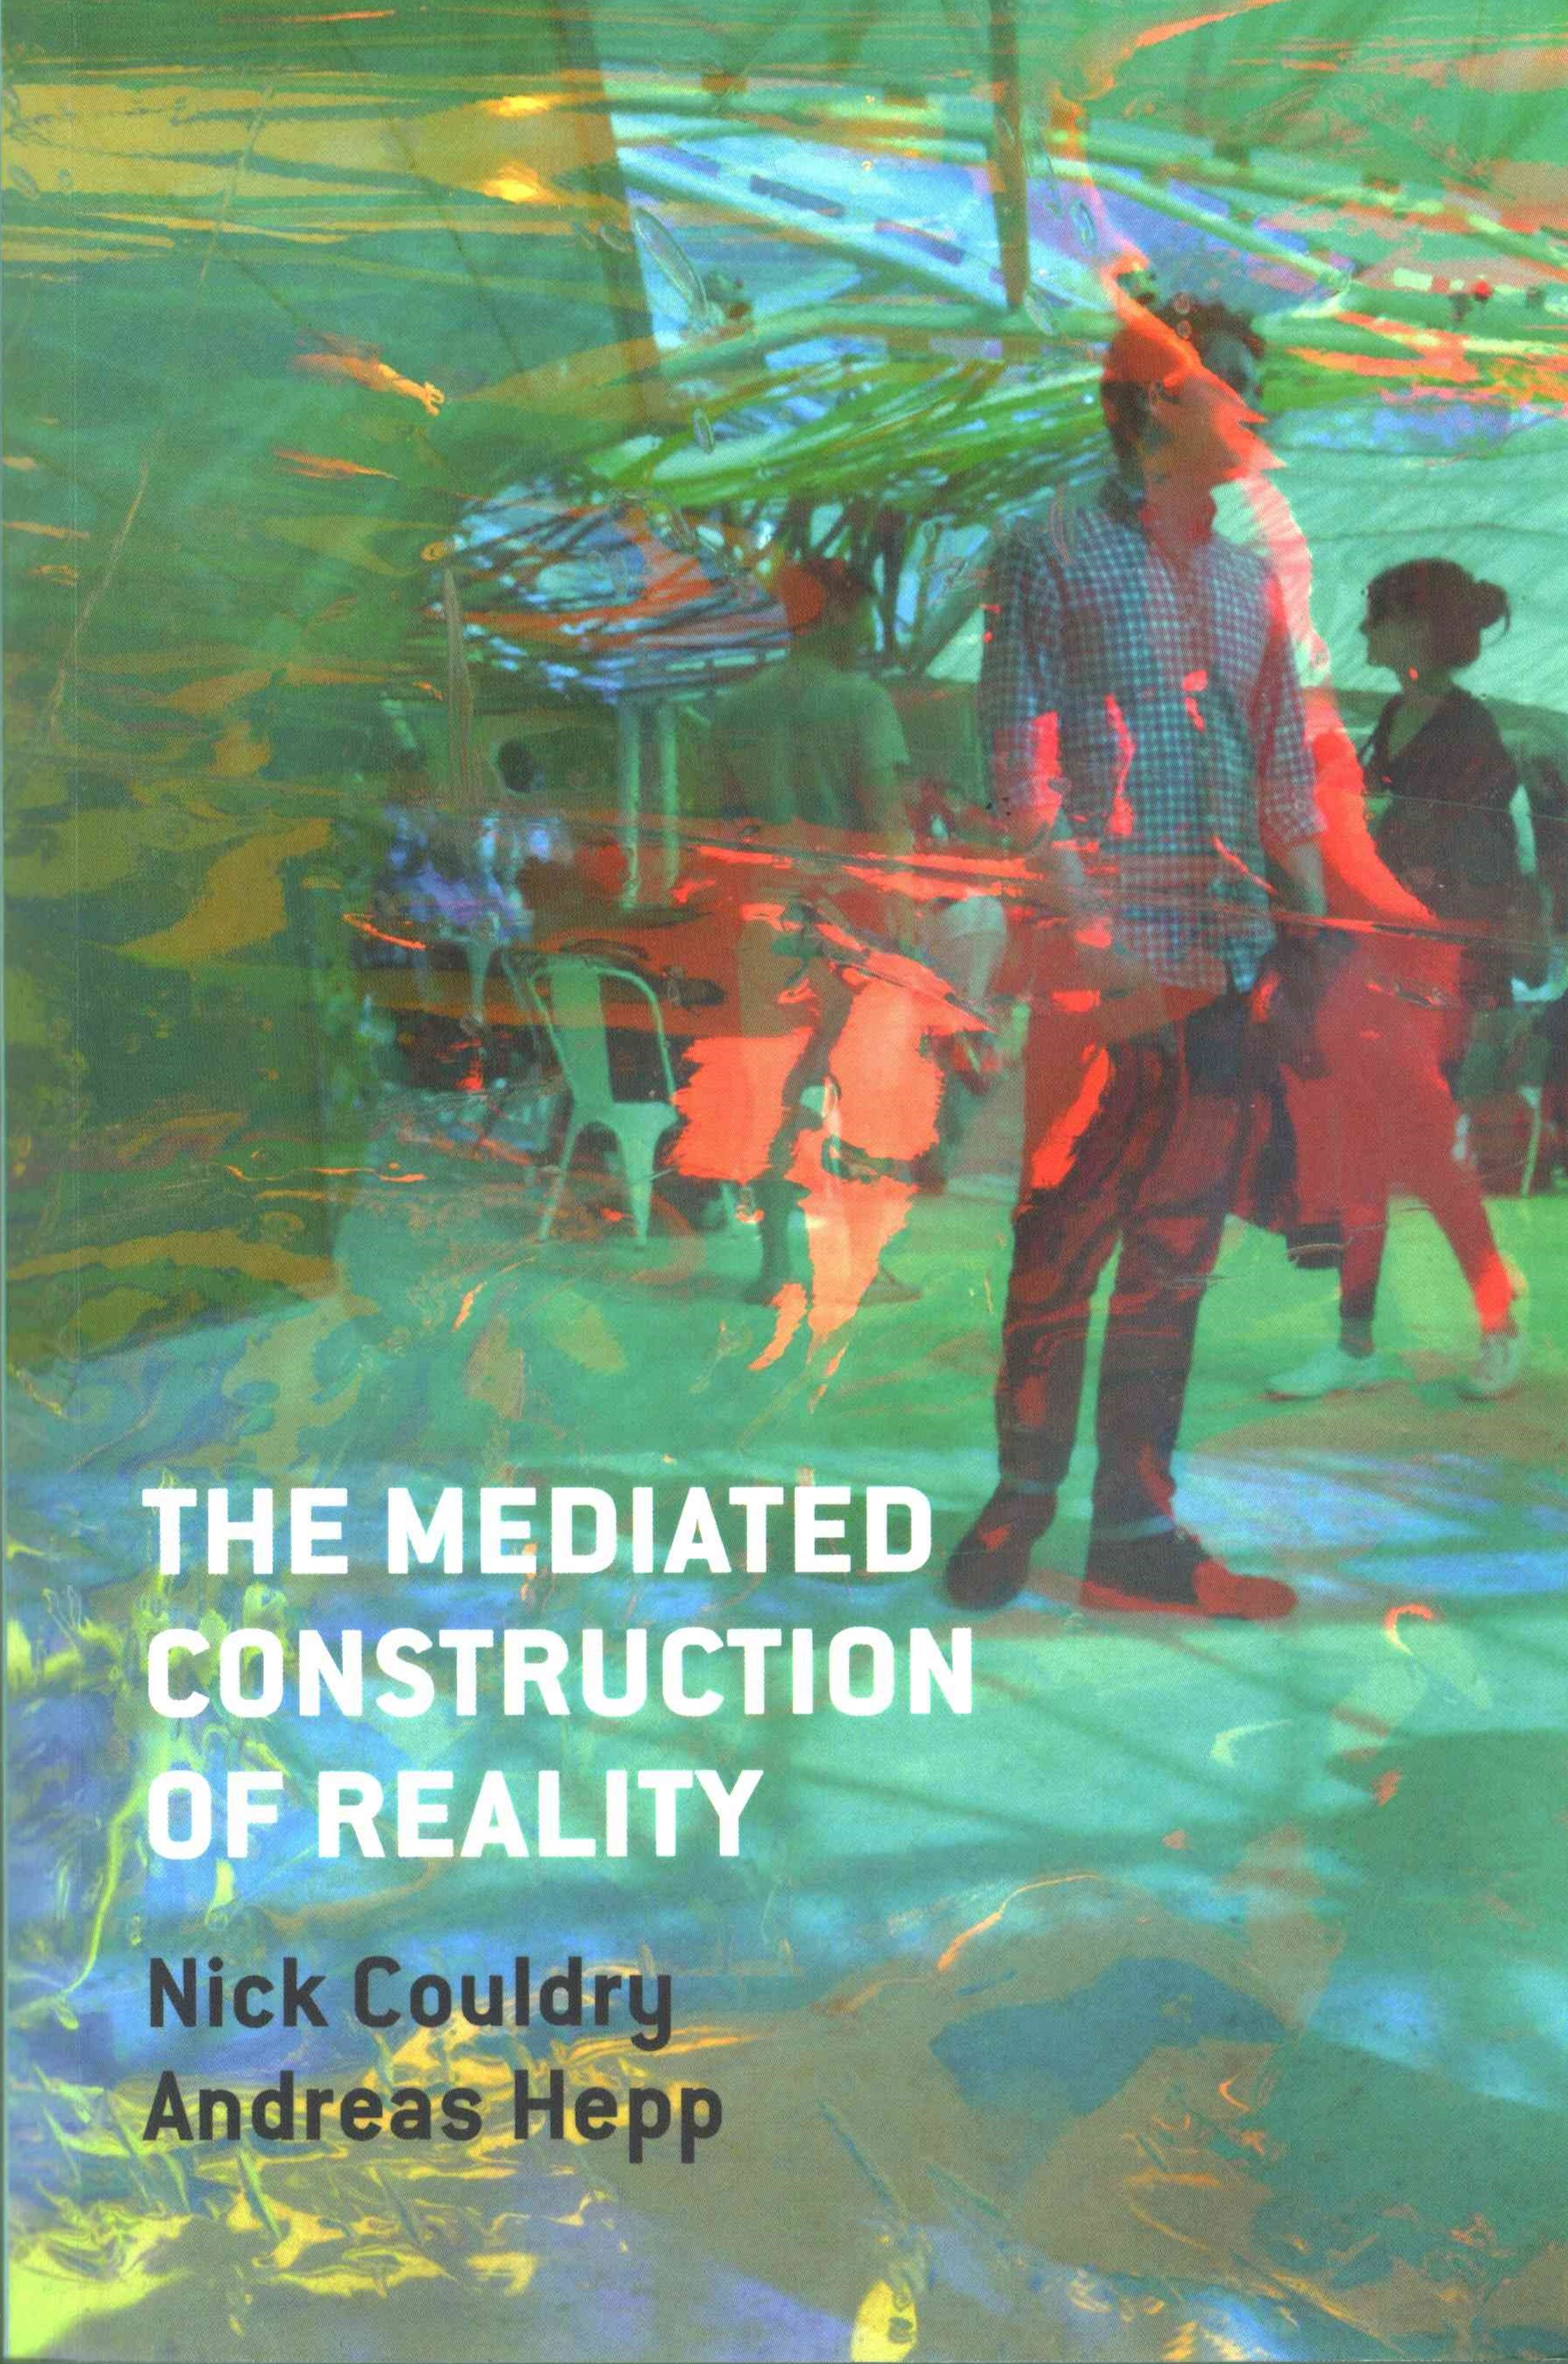 The Mediated Construction of Reality